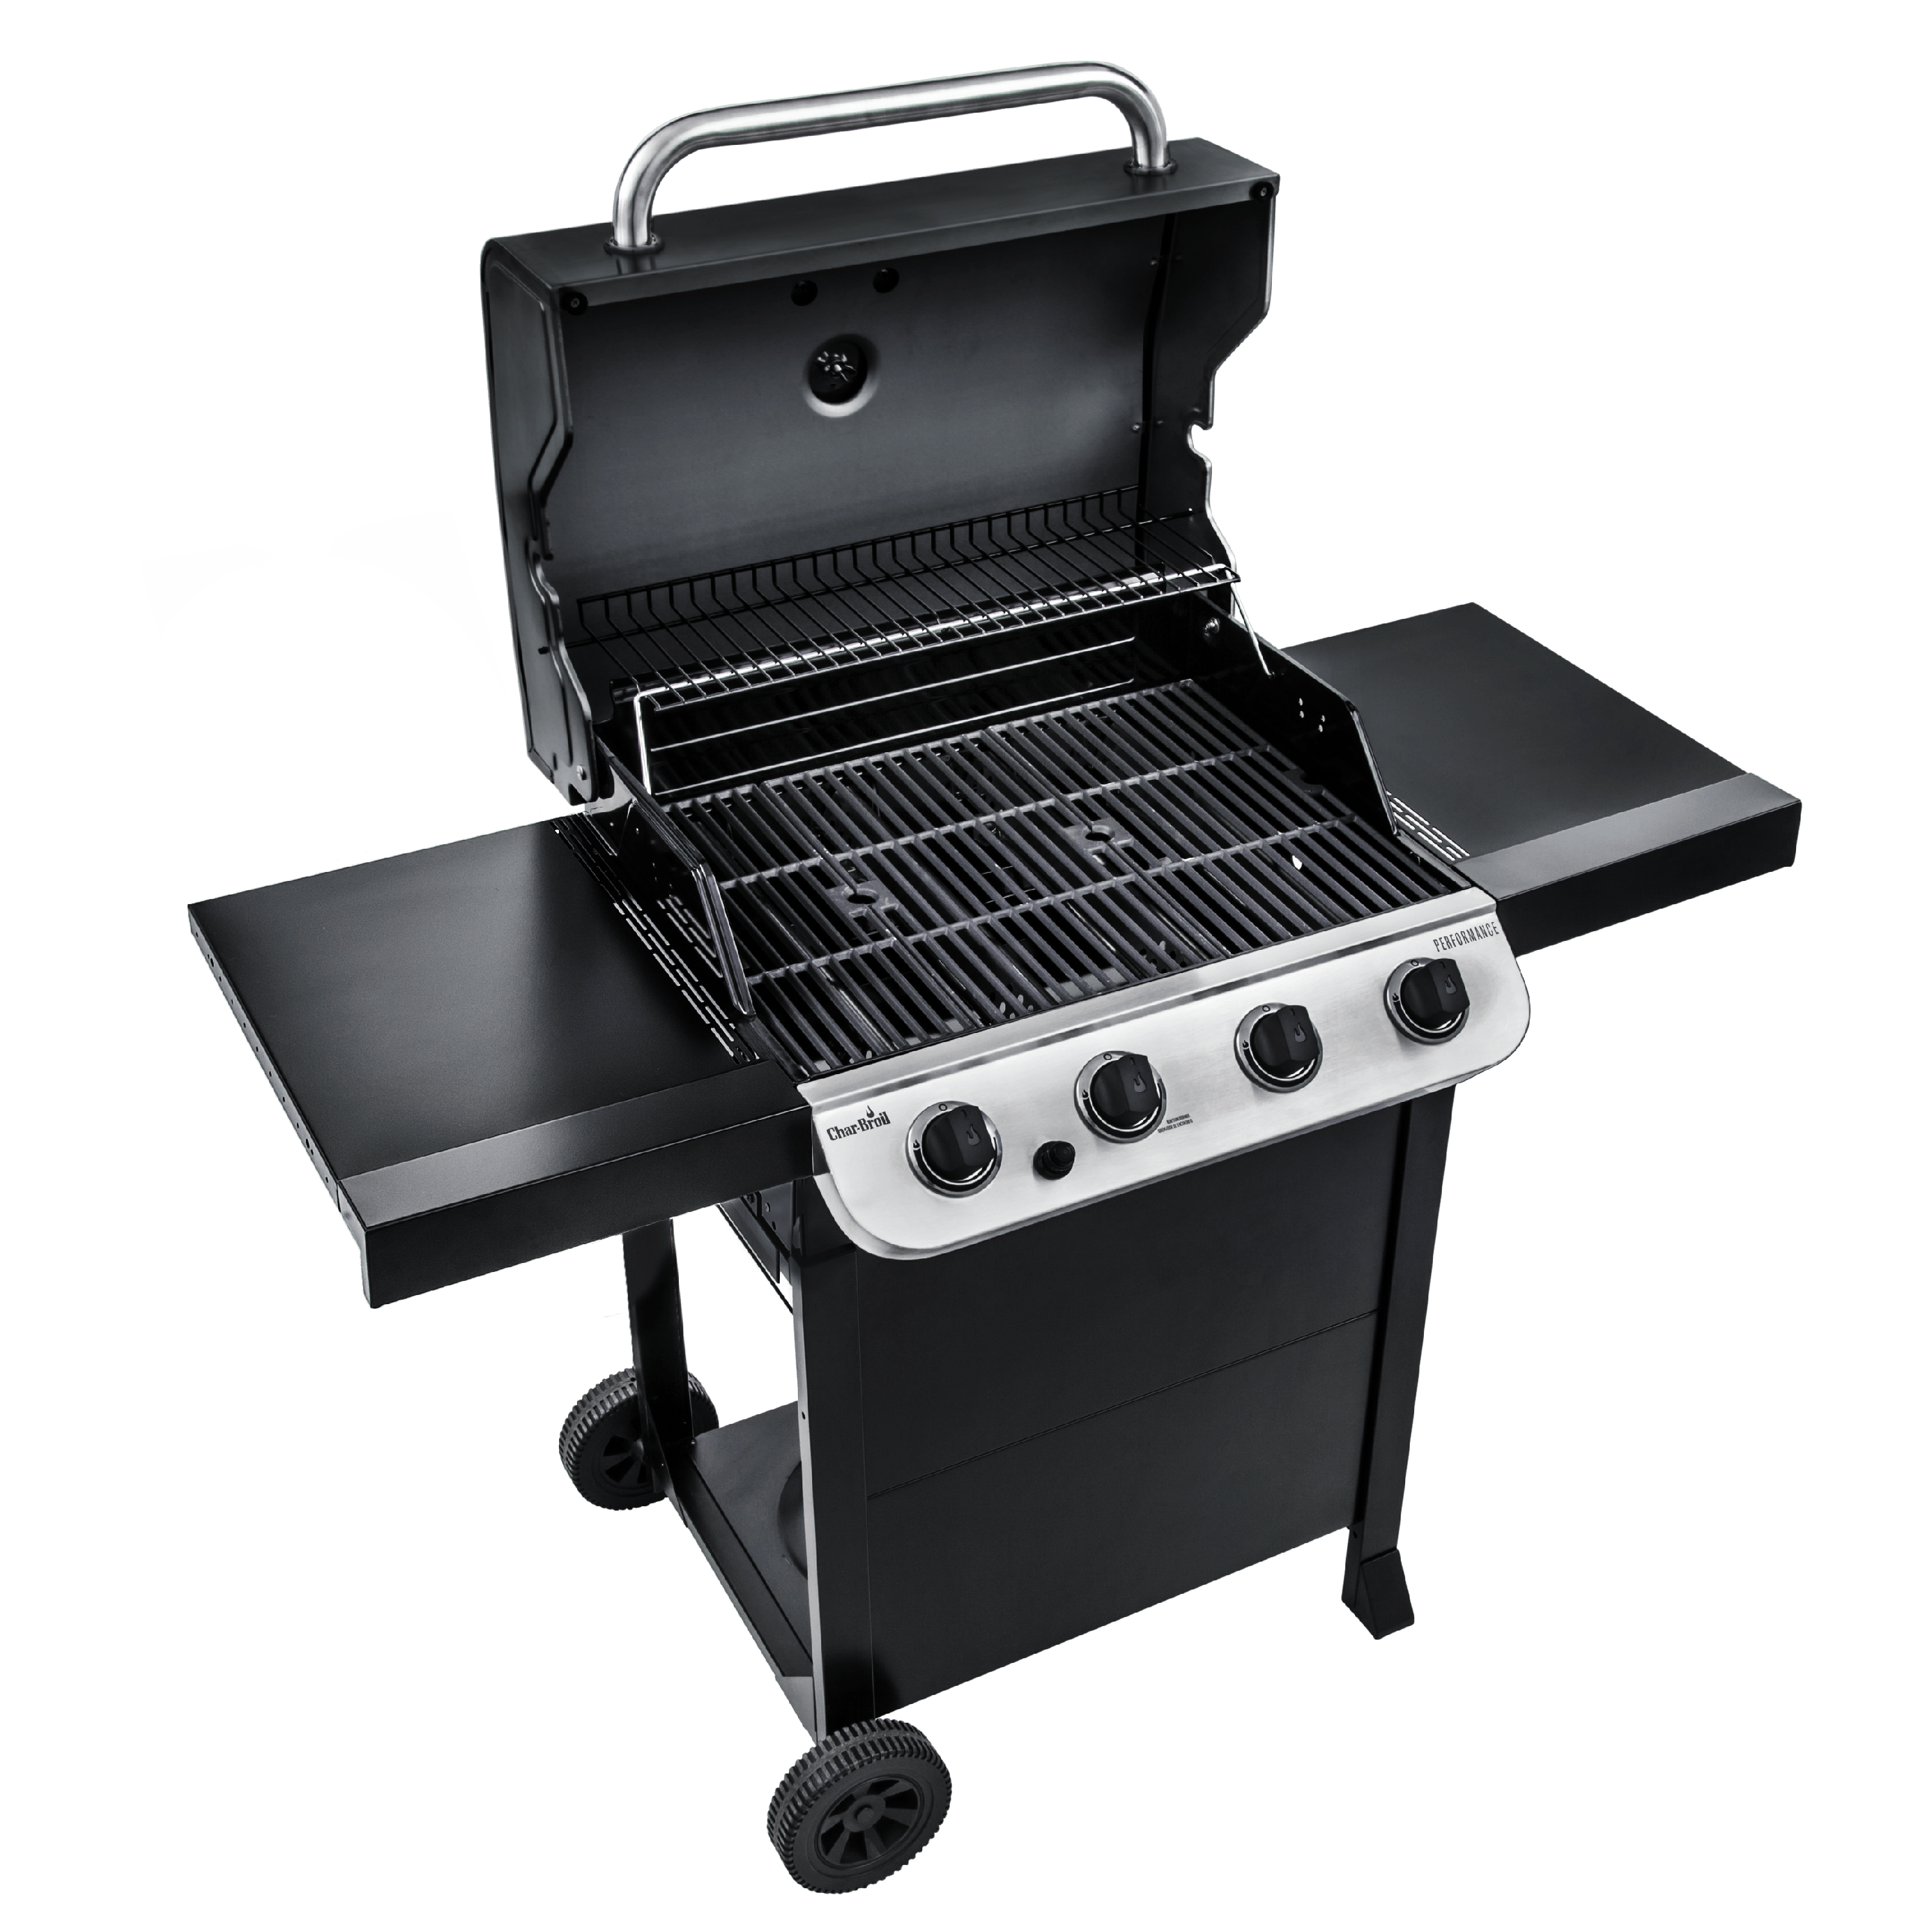 BBQ Gas Grill 4 Burner Backyard Patio Stainless Steel ...